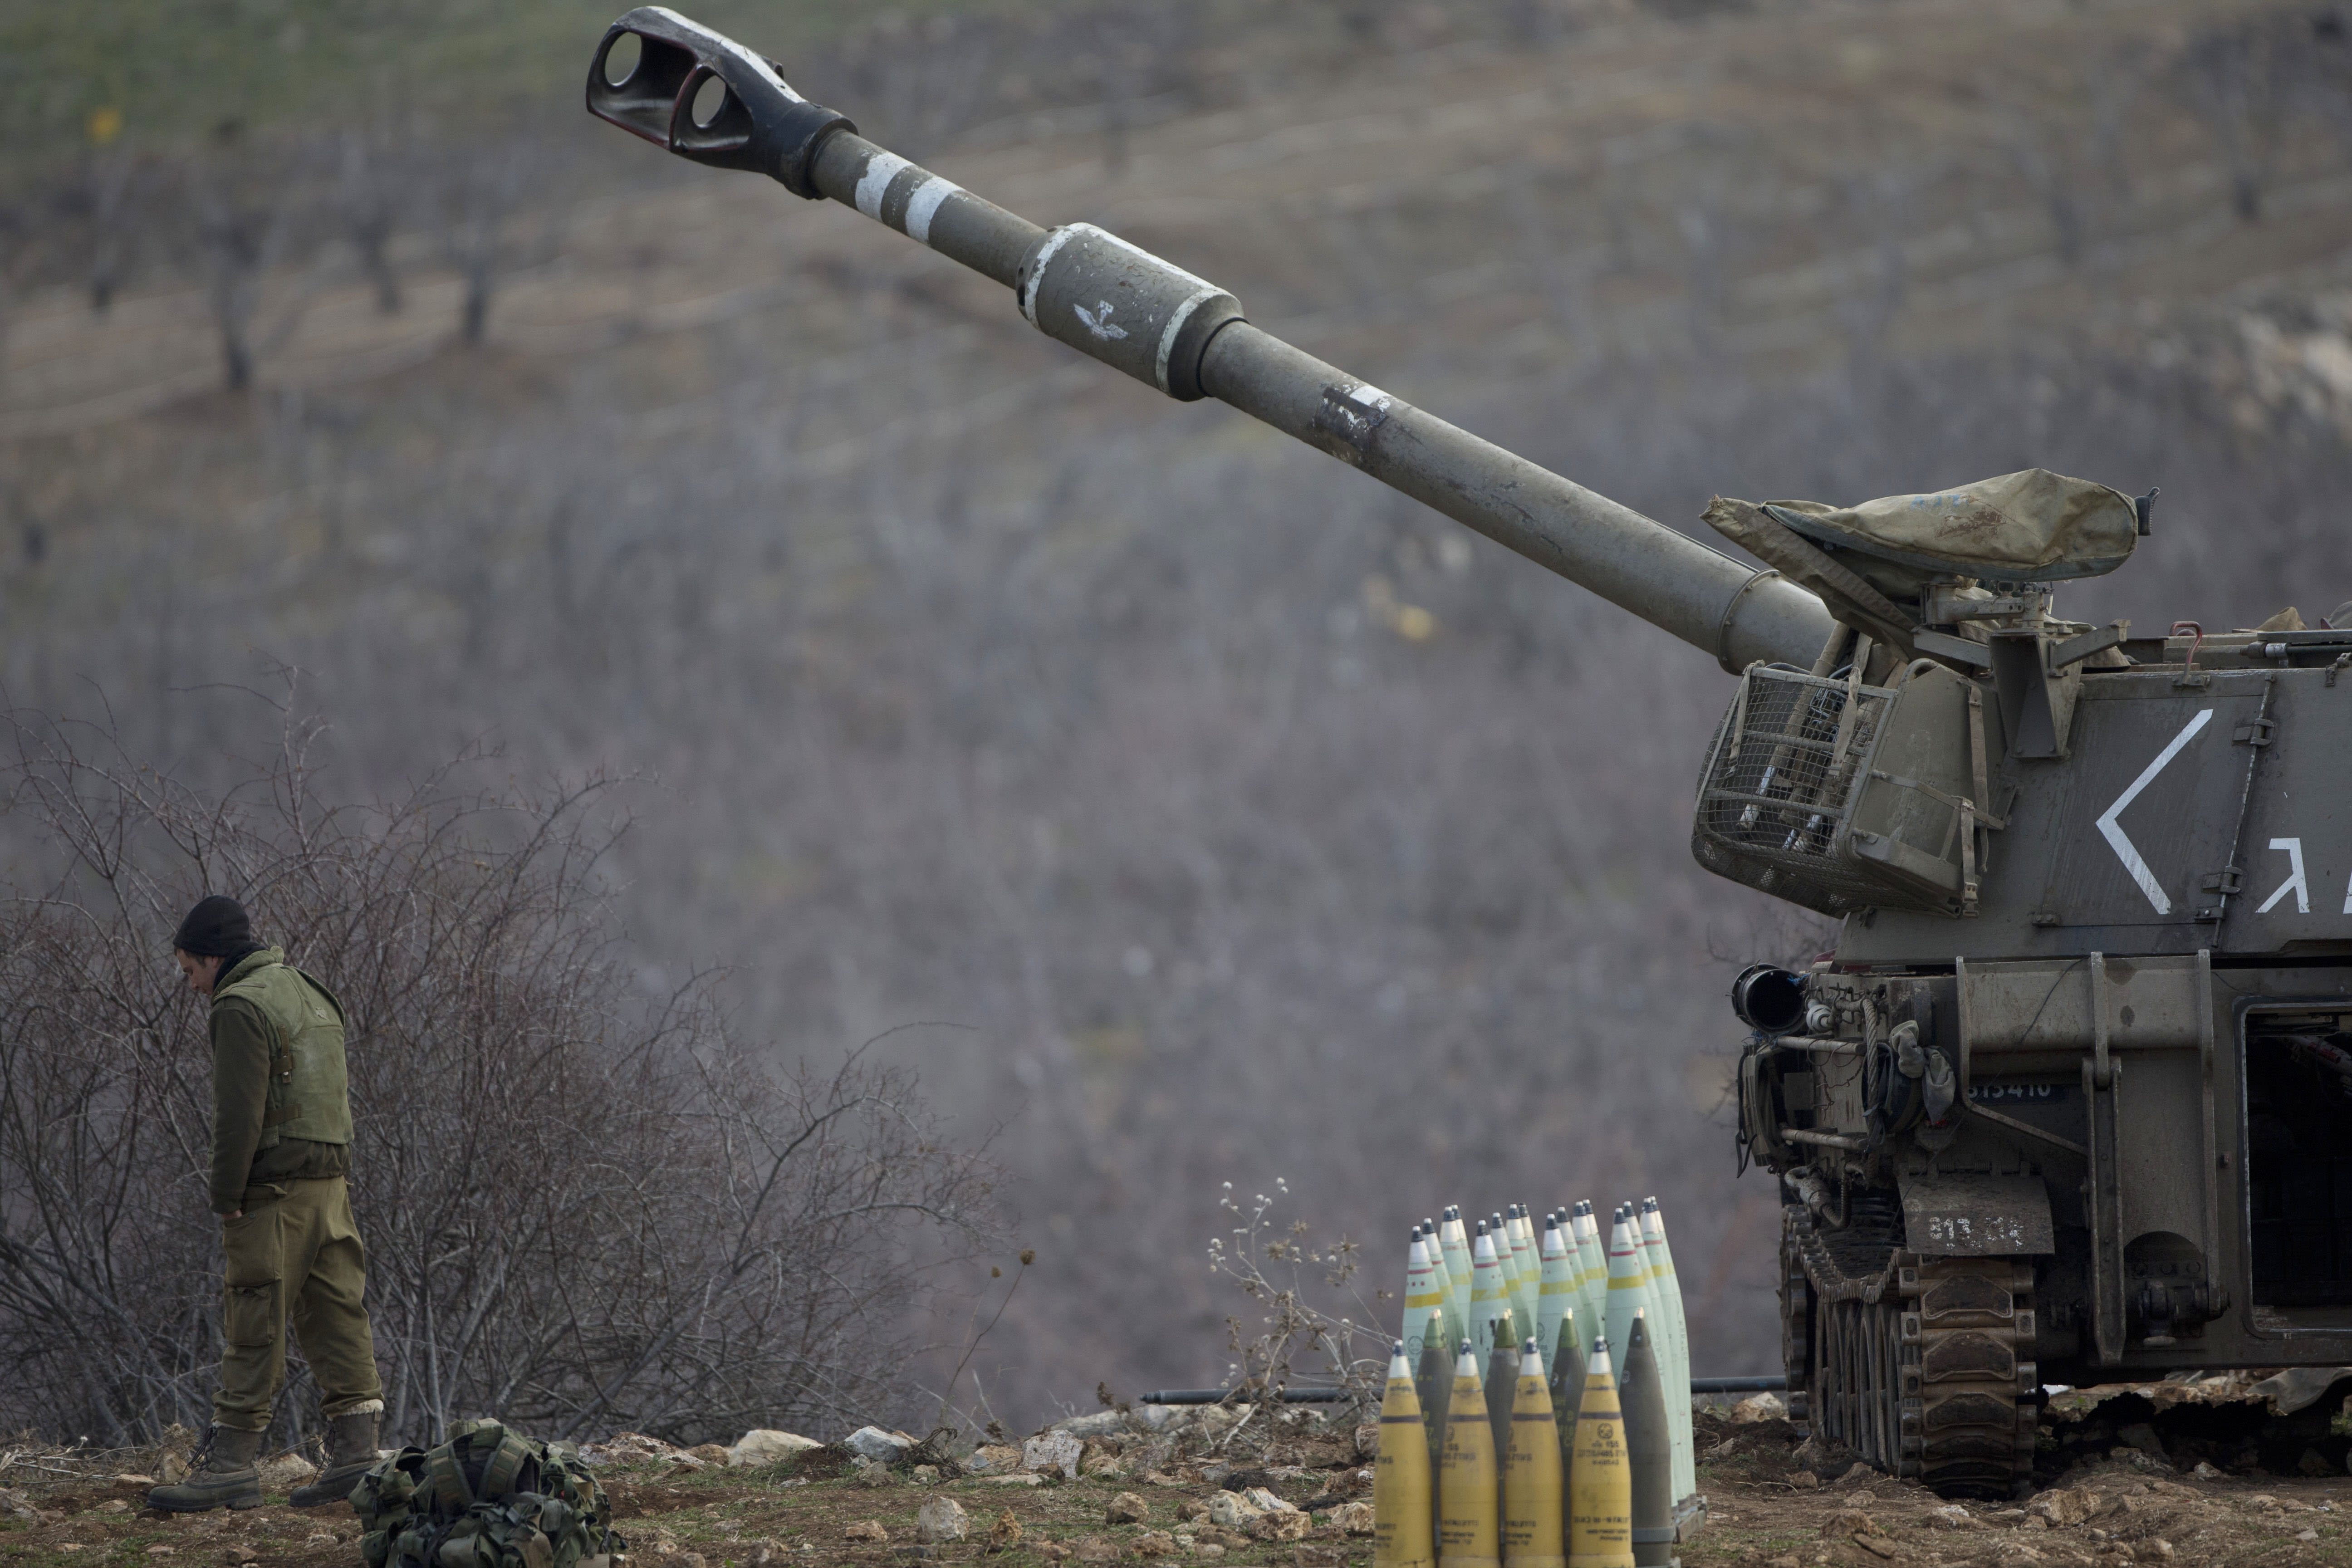 Israel military says its airstrikes target Syrian army posts